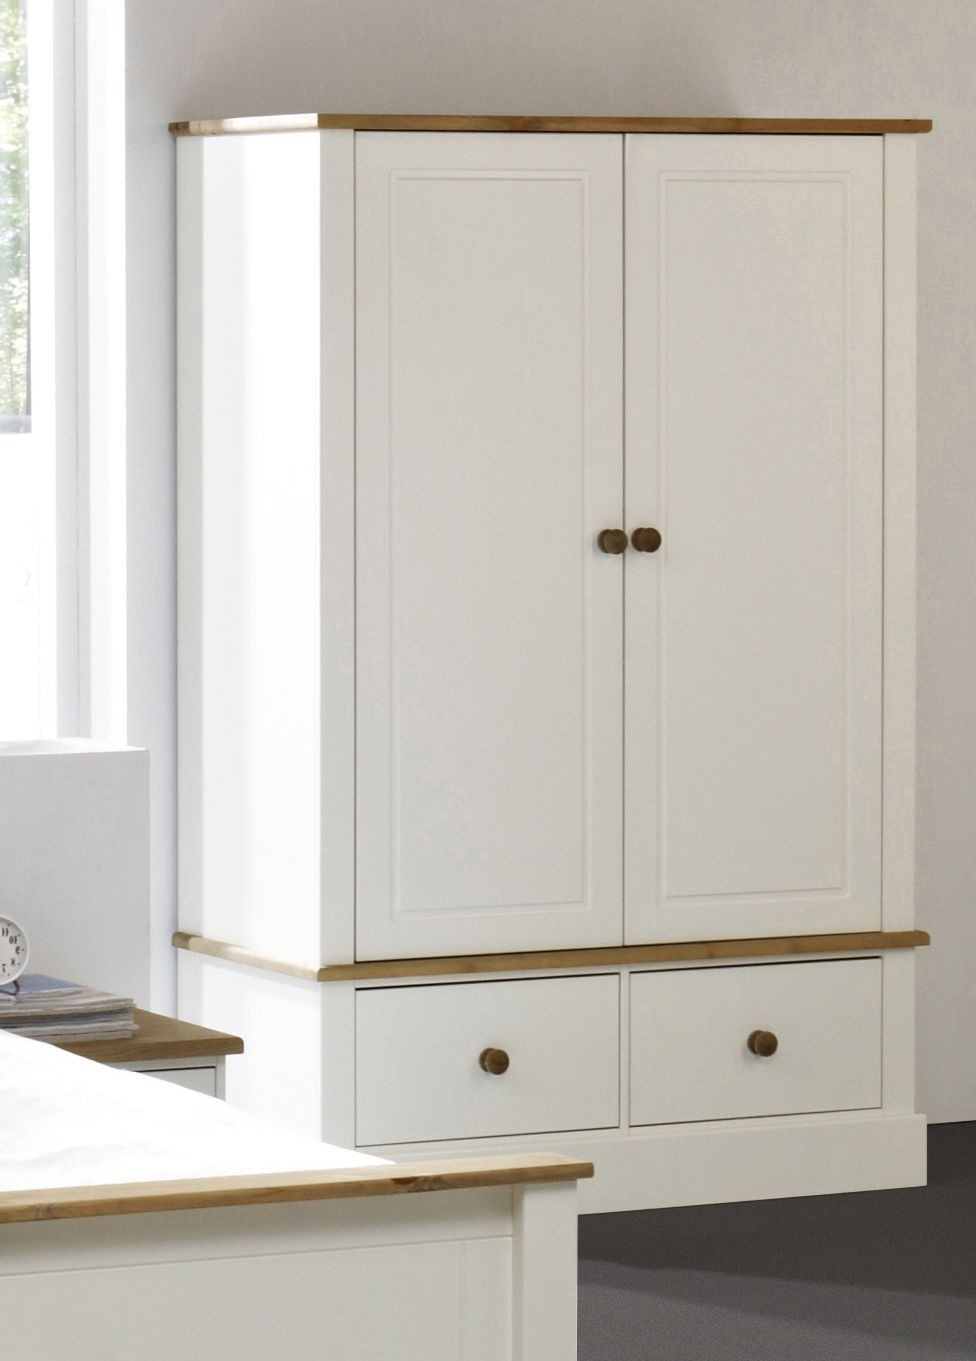 2017 White Wardrobe And Drawers With Mirror Triple Large This Will Be A Intended For White Double Wardrobes With Drawers (View 7 of 15)